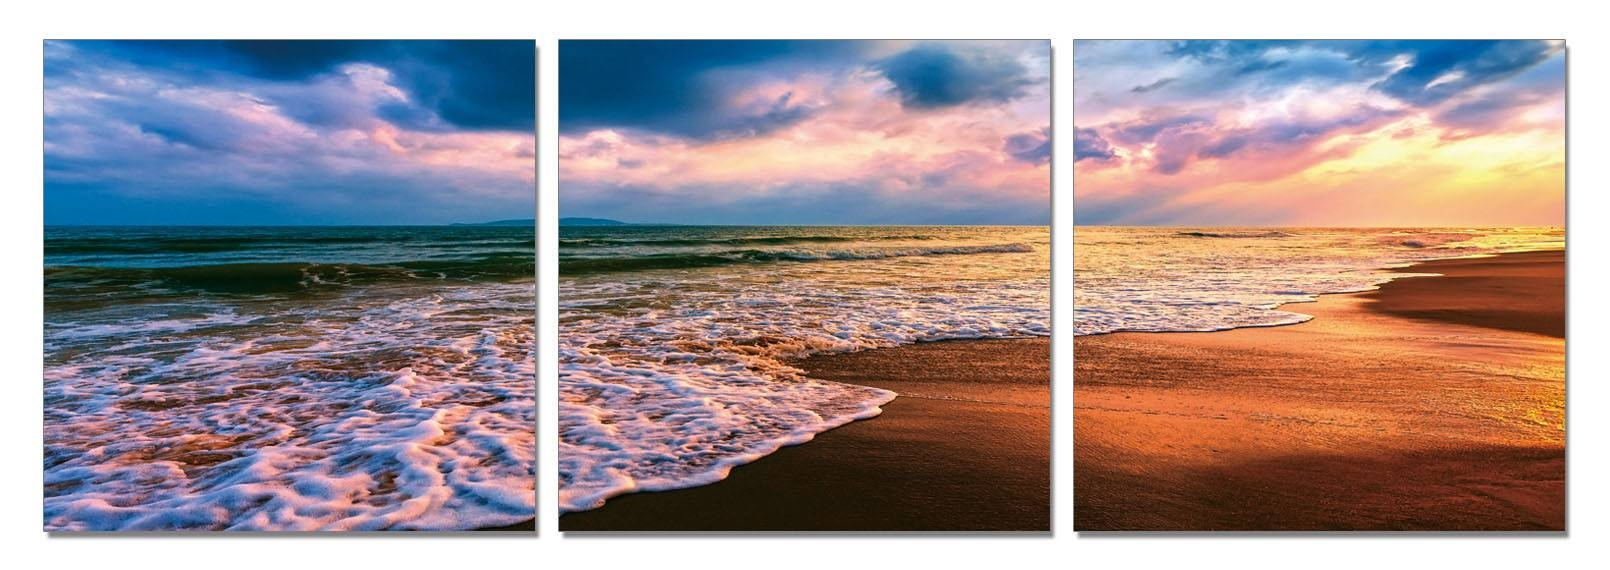 Exquisite Decoration Hawaii Wall Art Absolutely Smart Sunset Regarding Newest Hawaiian Wall Art Decor (View 12 of 30)